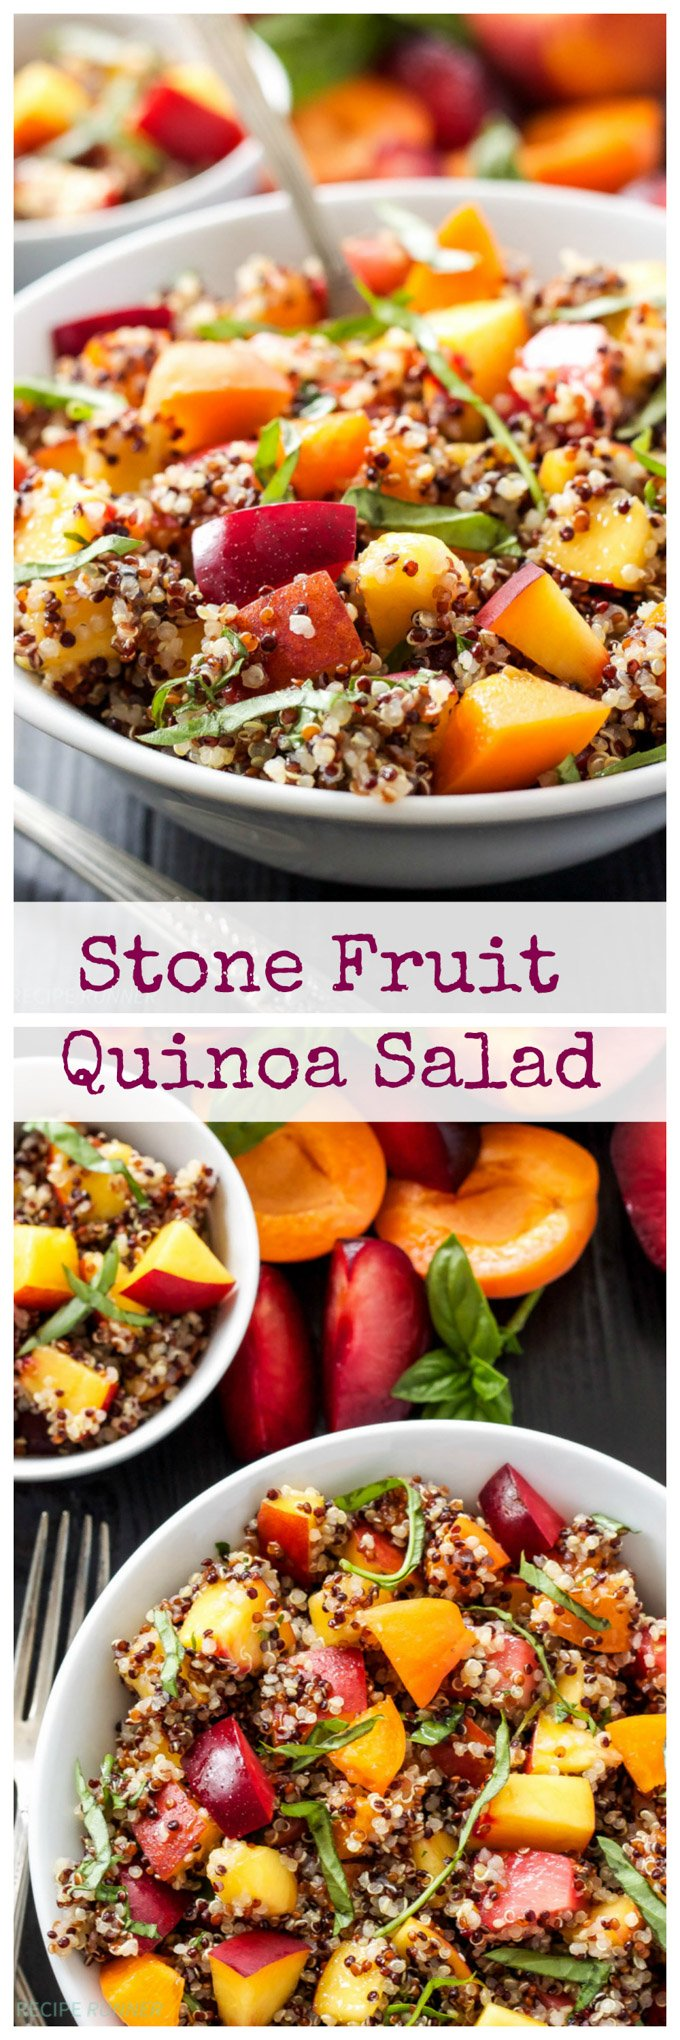 Plums, peaches, nectarines, apricots, and basil mixed with quinoa take your average fruit salad to a whole new level. Toss the salad in a honey lime dressing for a healthy summer side dish!